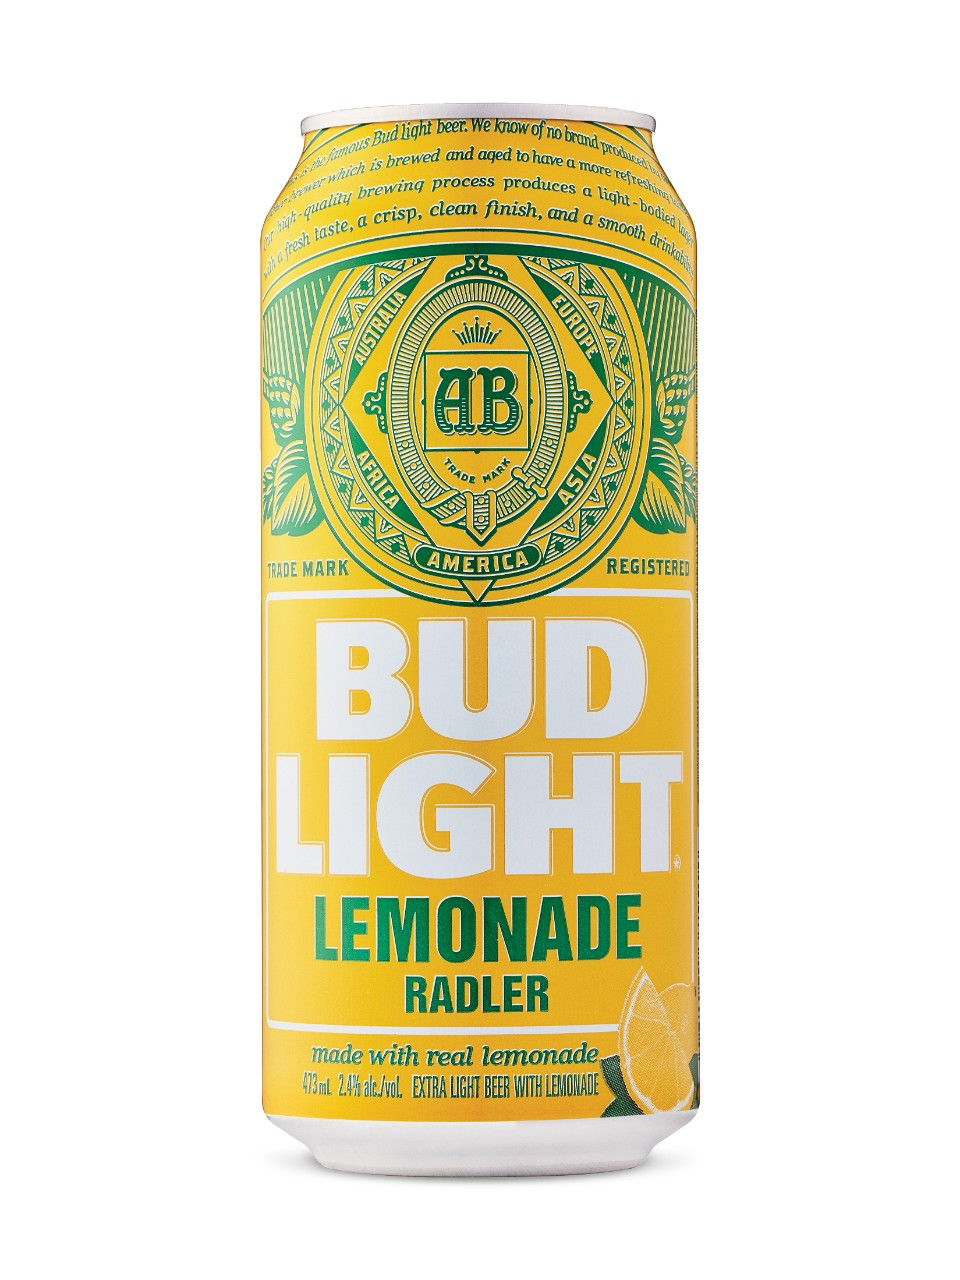 Bud Light Lemonade Radler